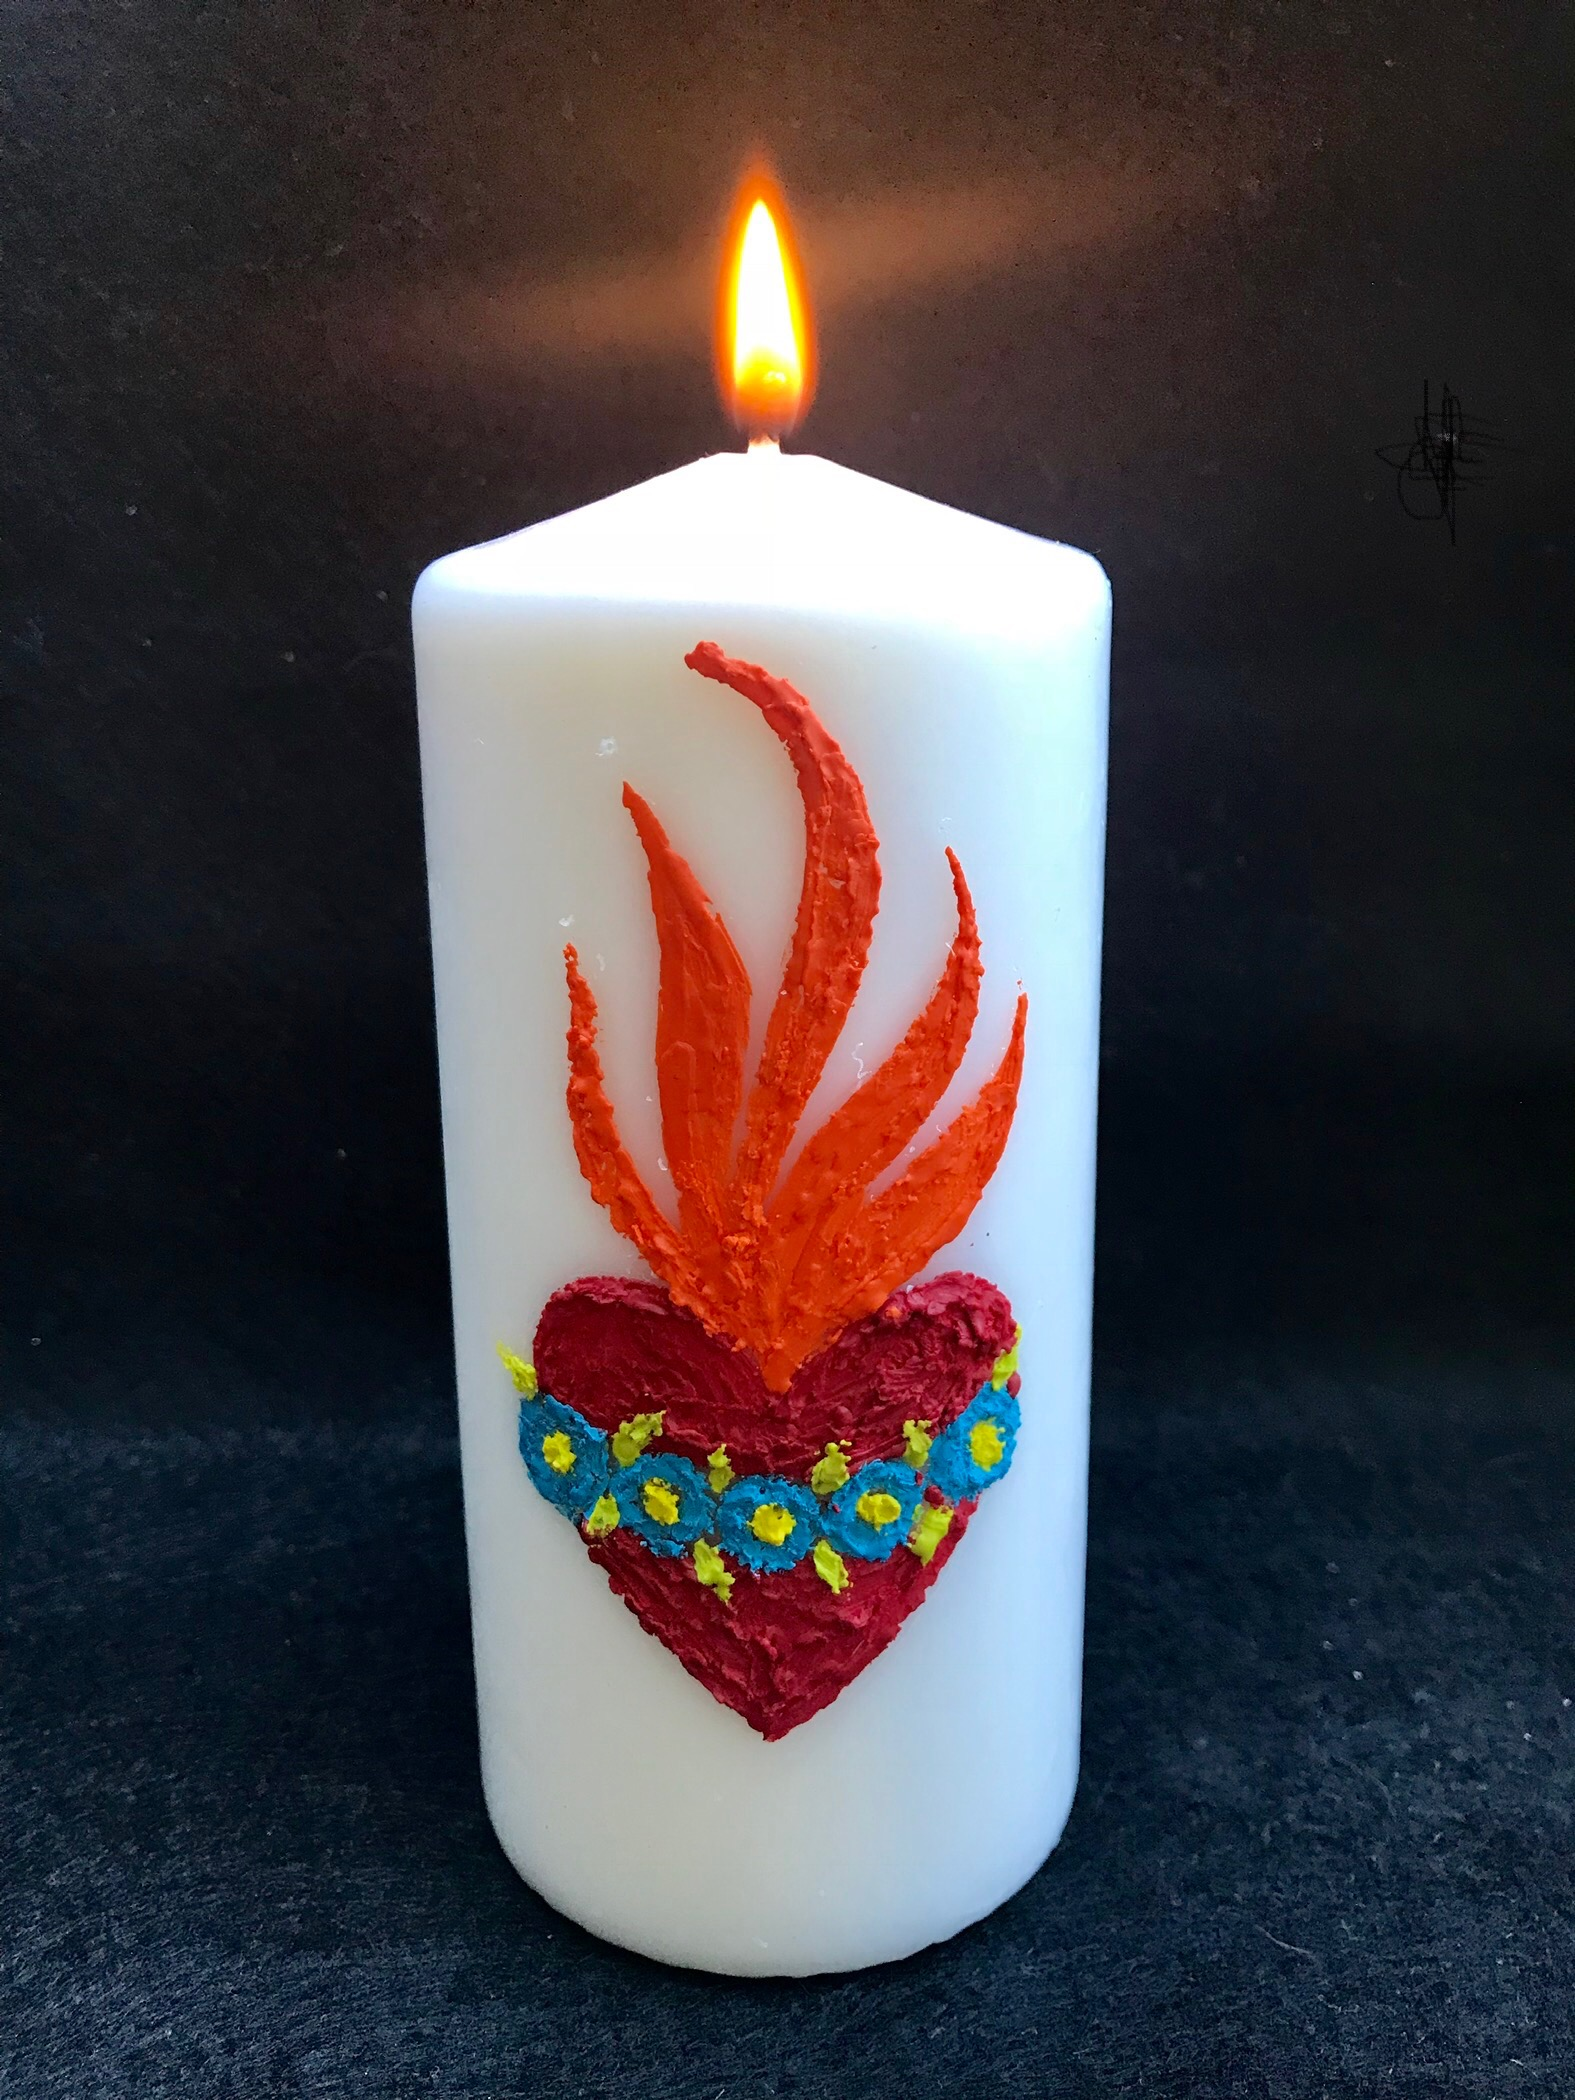 Day 307. Candle decorating with melted Crayons